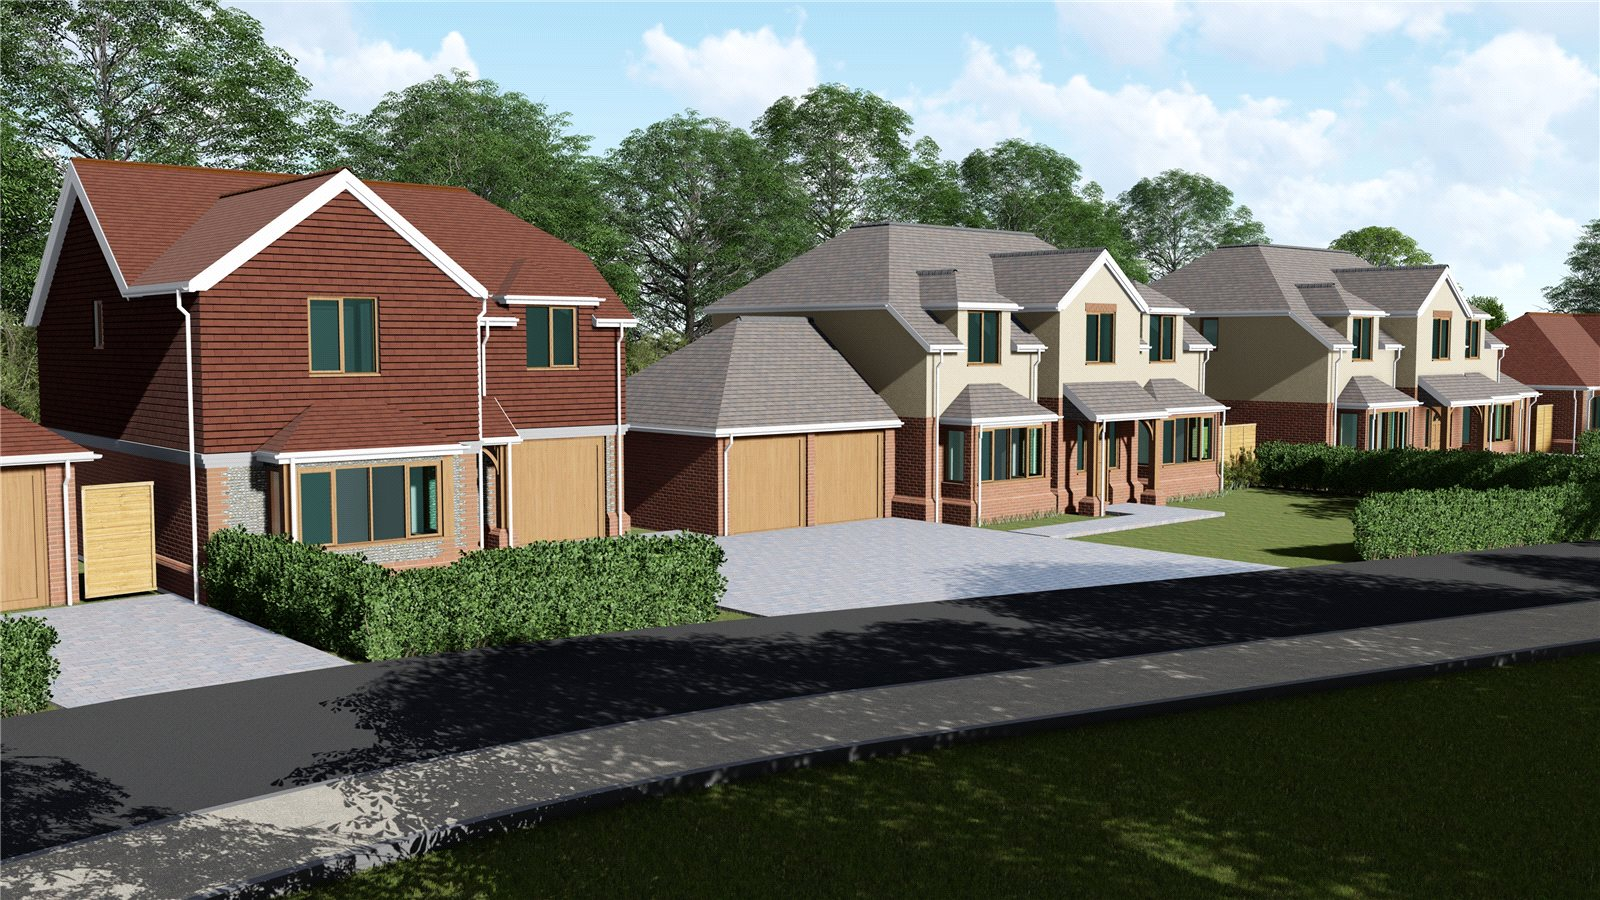 4 bed house for sale in Starlings View, Arundel Road, Angmering 1